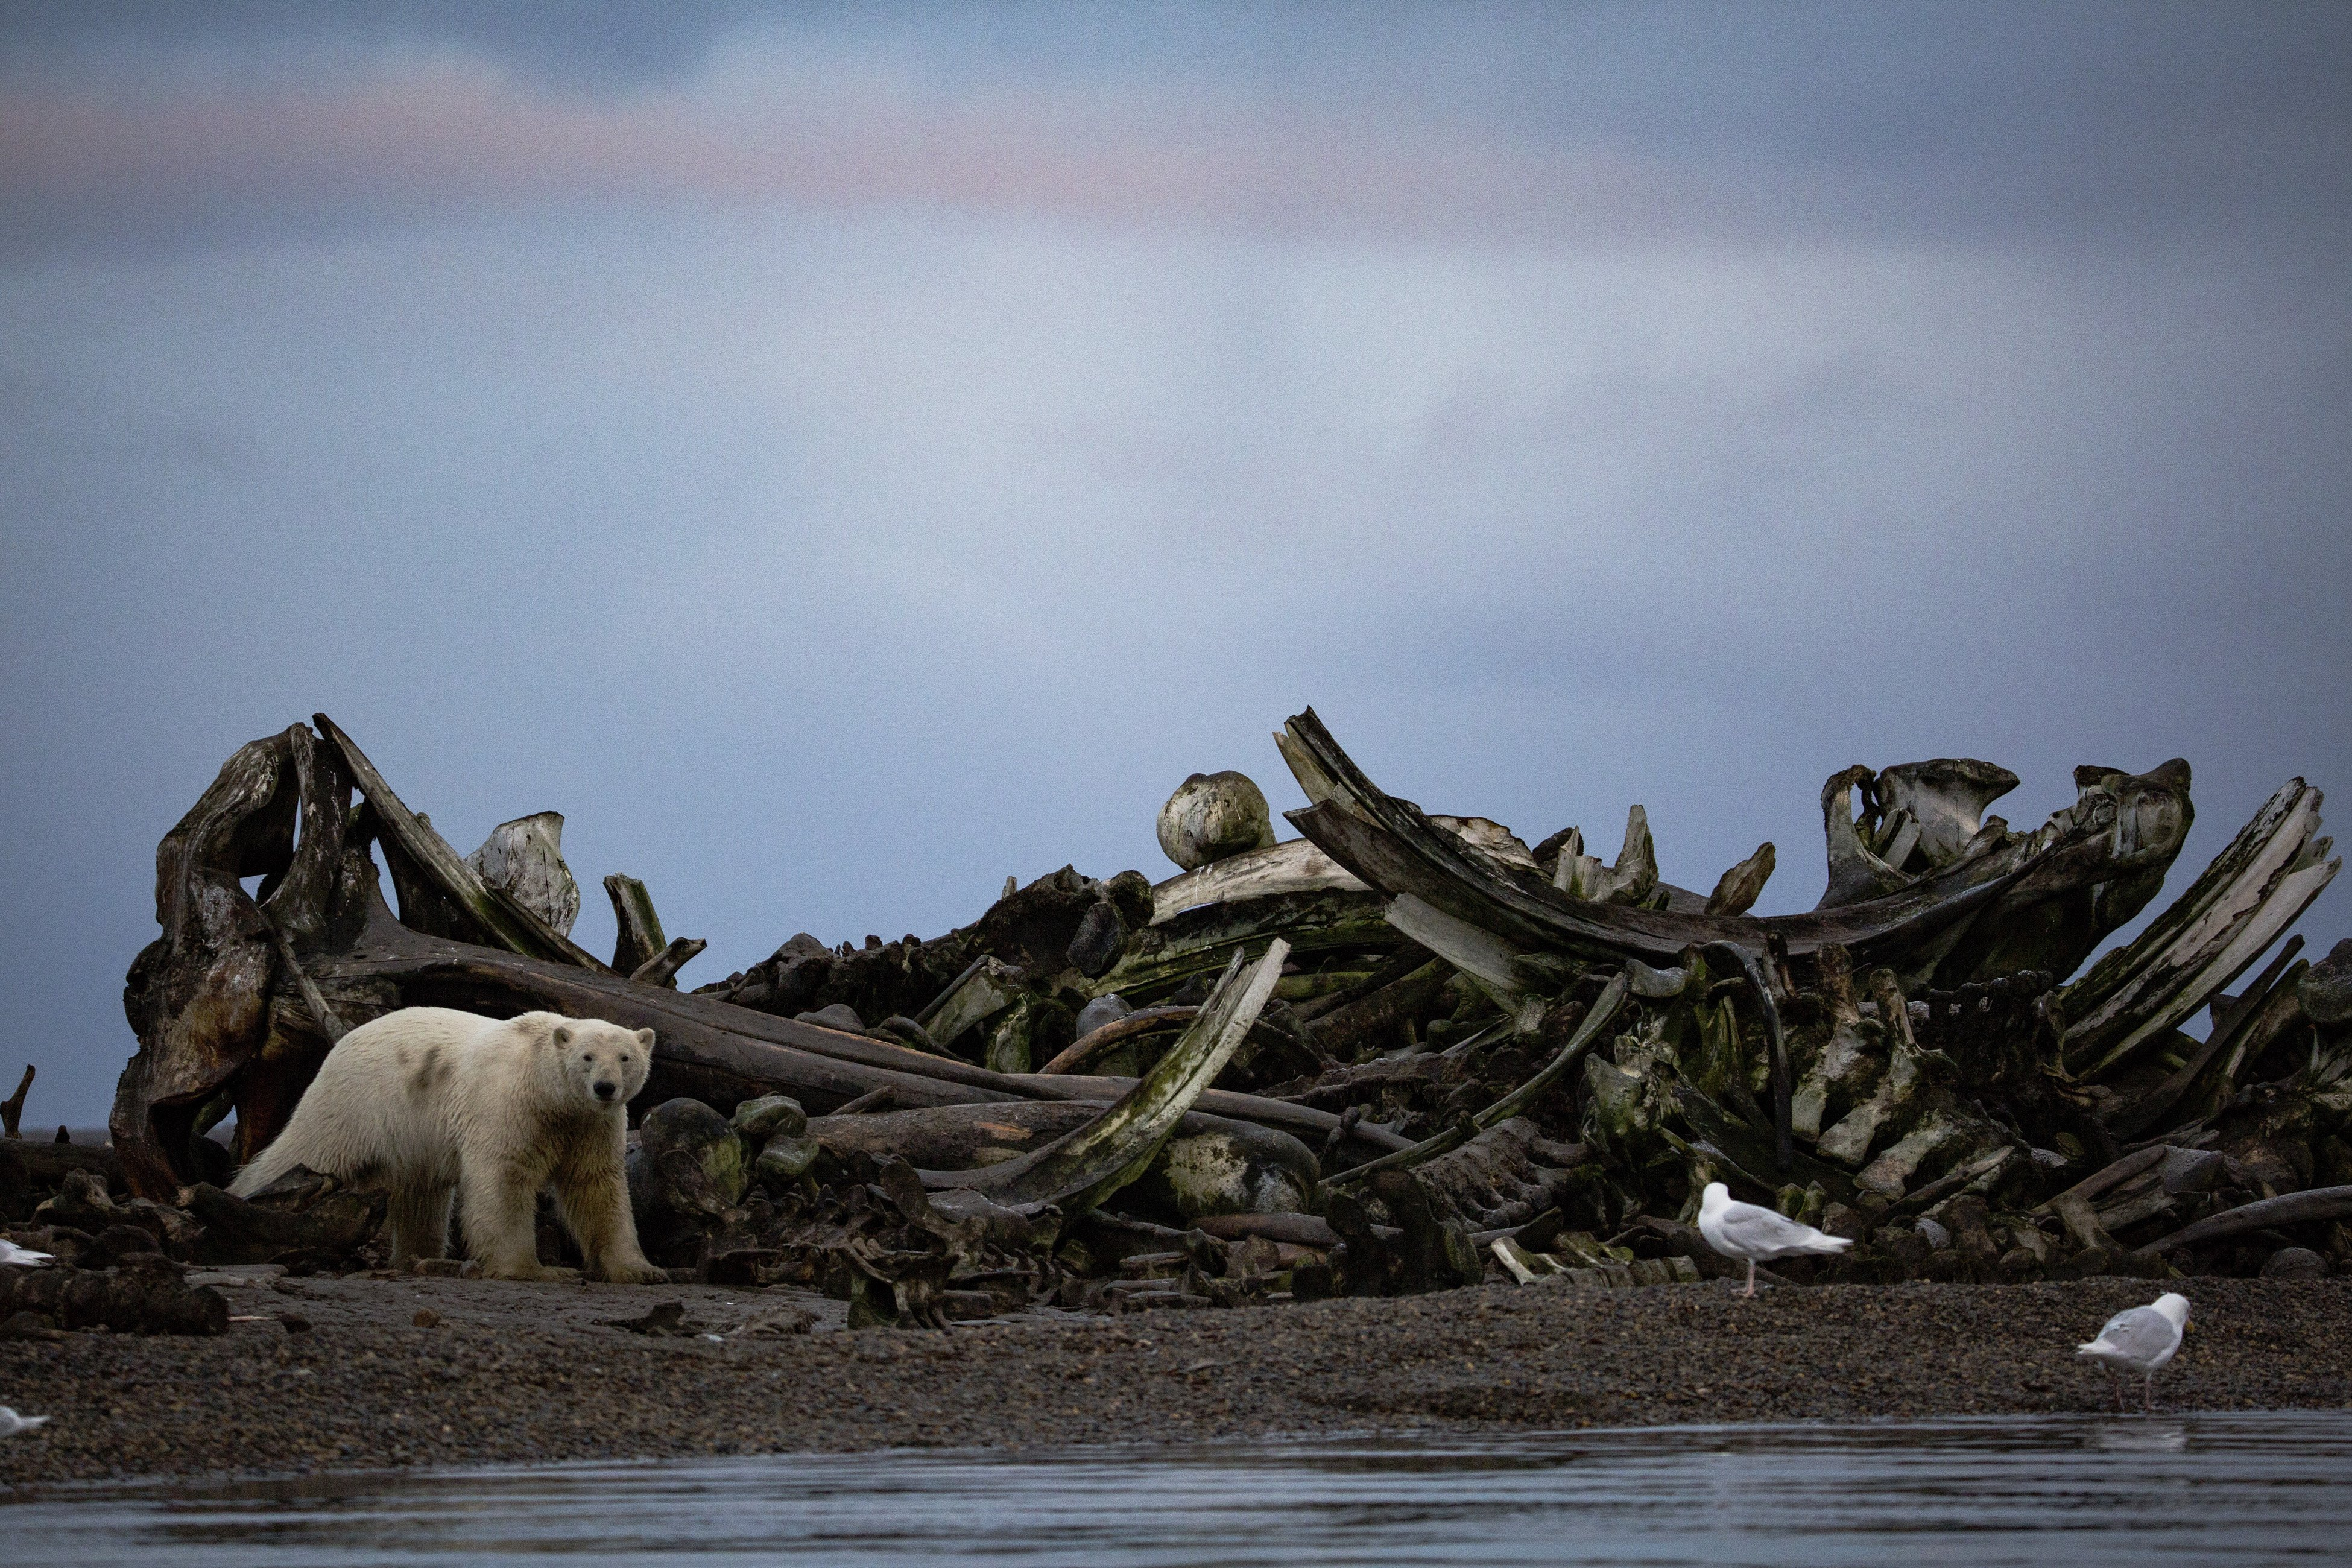 A polar bear near a pile of whale bones placed by villagers just outside the town of Kaktovik, Alaska, Sept. 11, 2016. Polar bears roam the town during the fall as climate refugees, on land because the sea ice they rely on for hunting seals is receding. (Josh Haner/The New York Times)